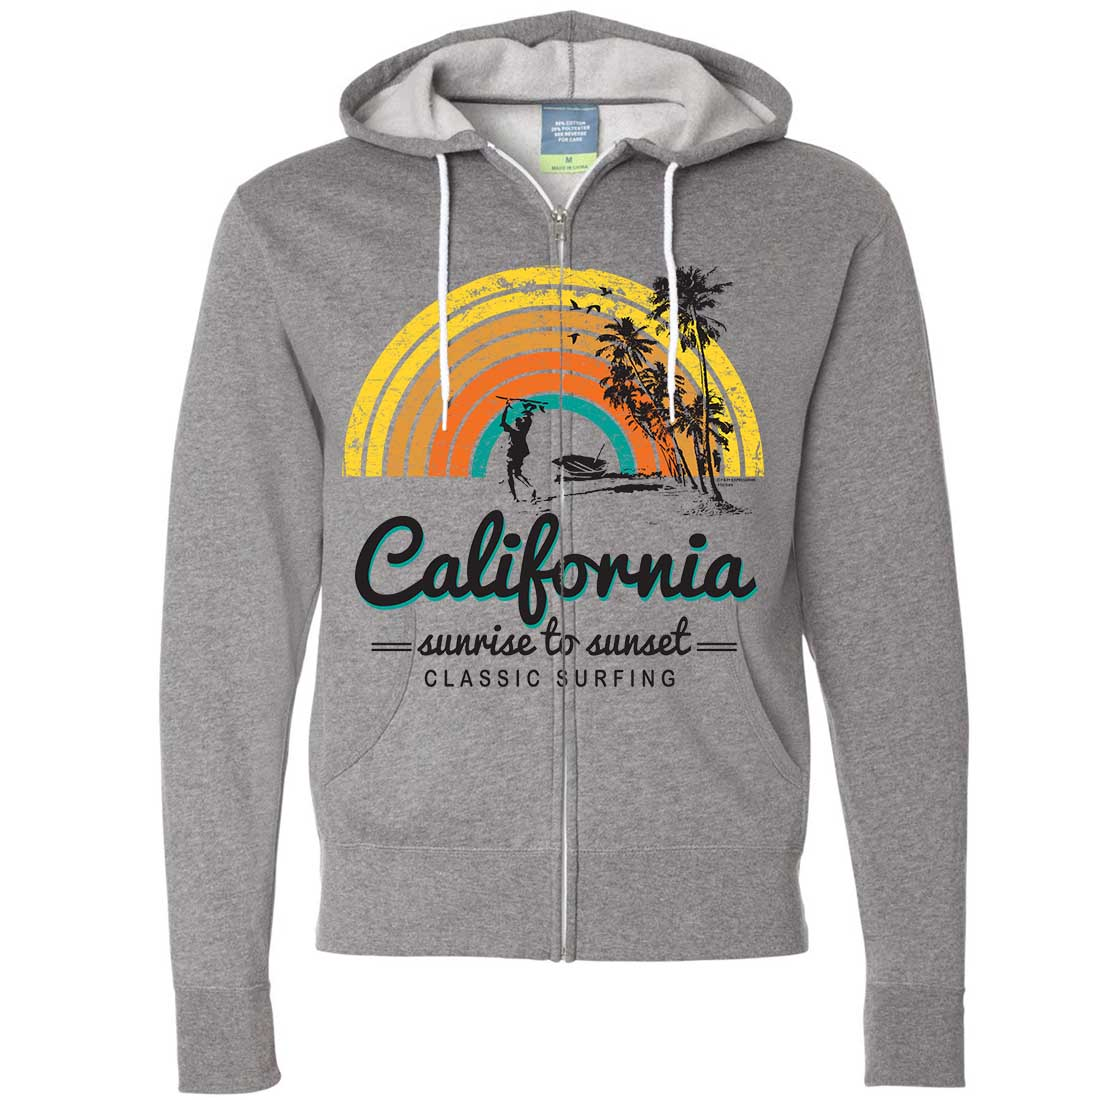 California Classic Sunrise Surfing Zip-Up Hoodie